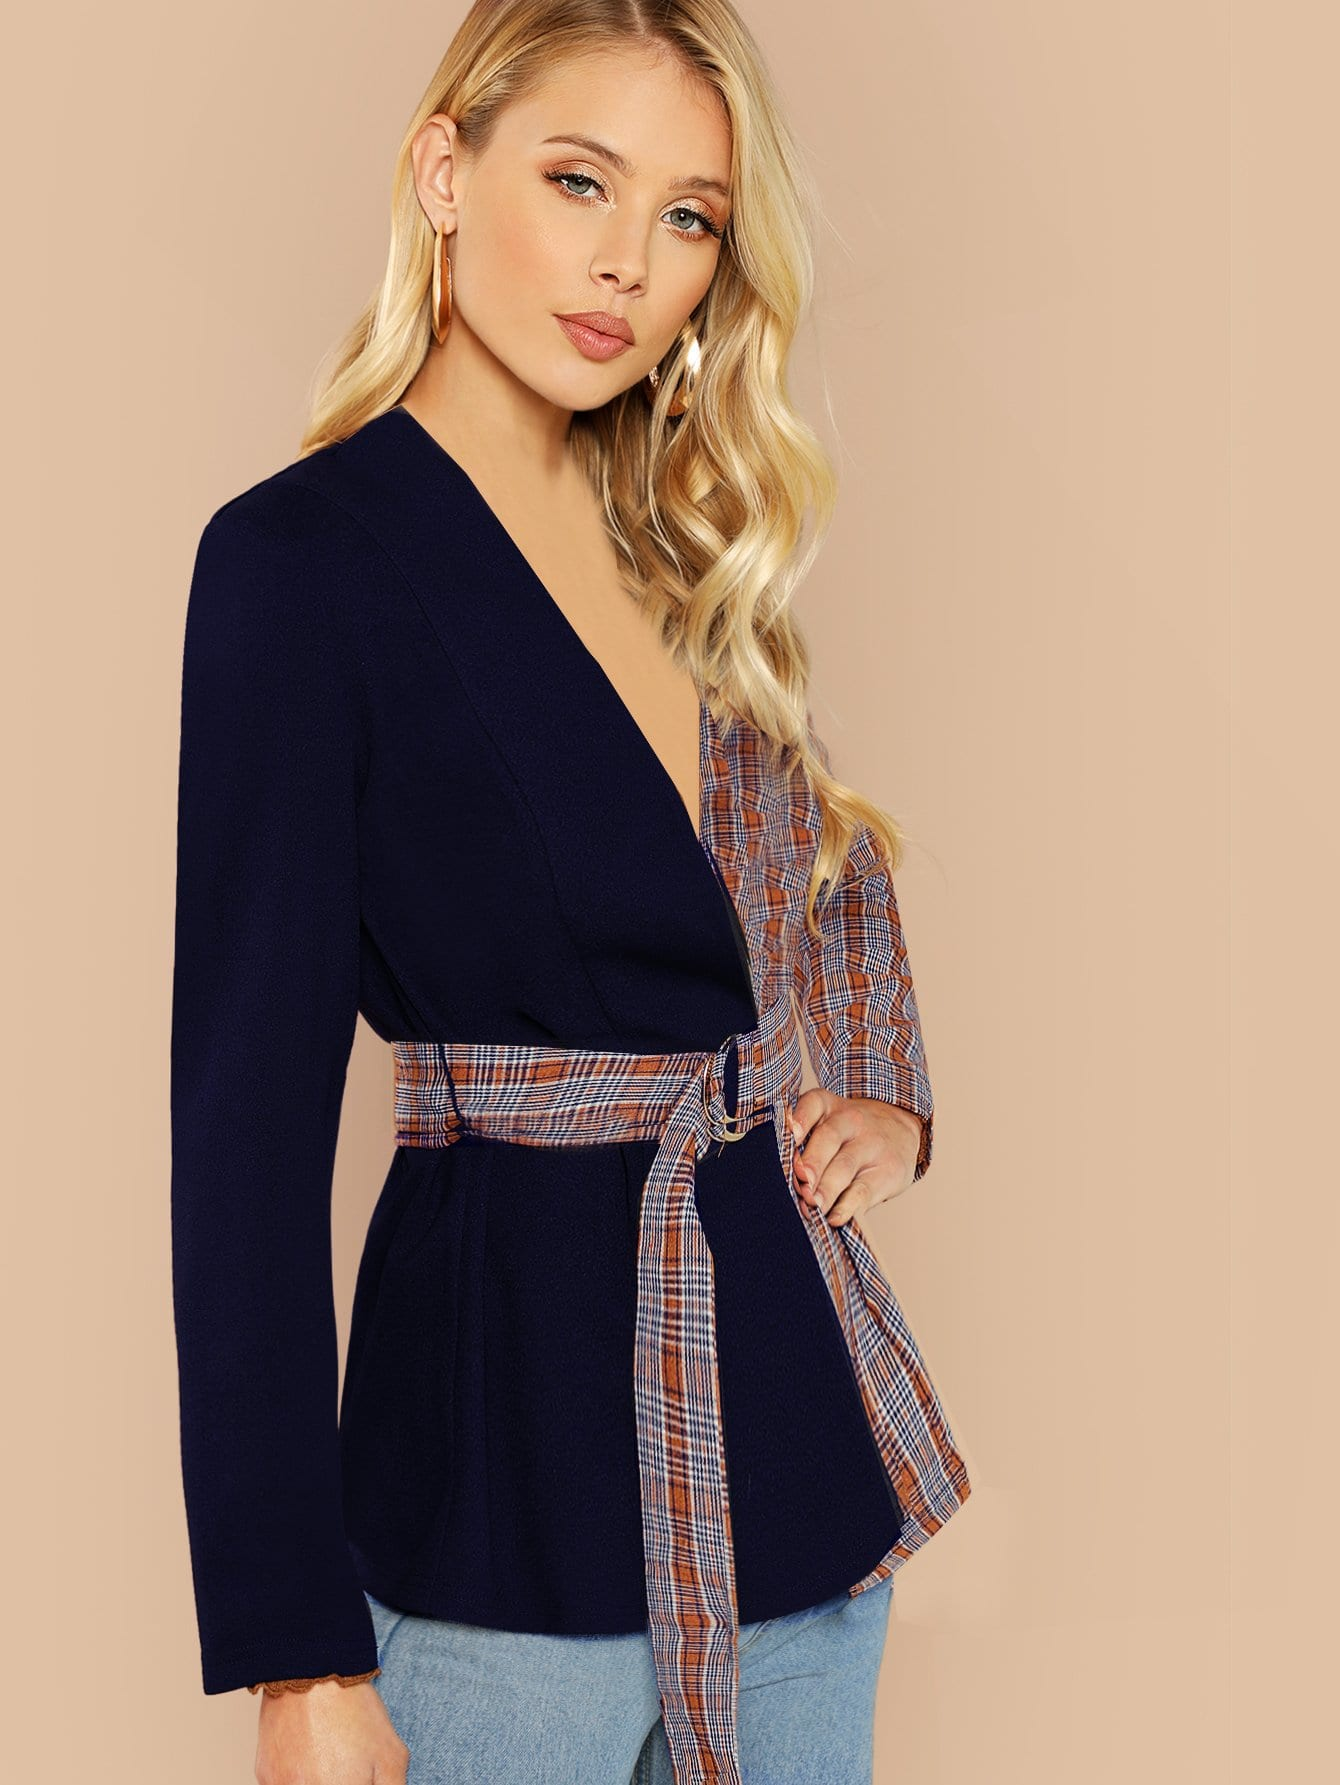 Two Tone Belted Coat-Sunshine's Boutique & Gifts